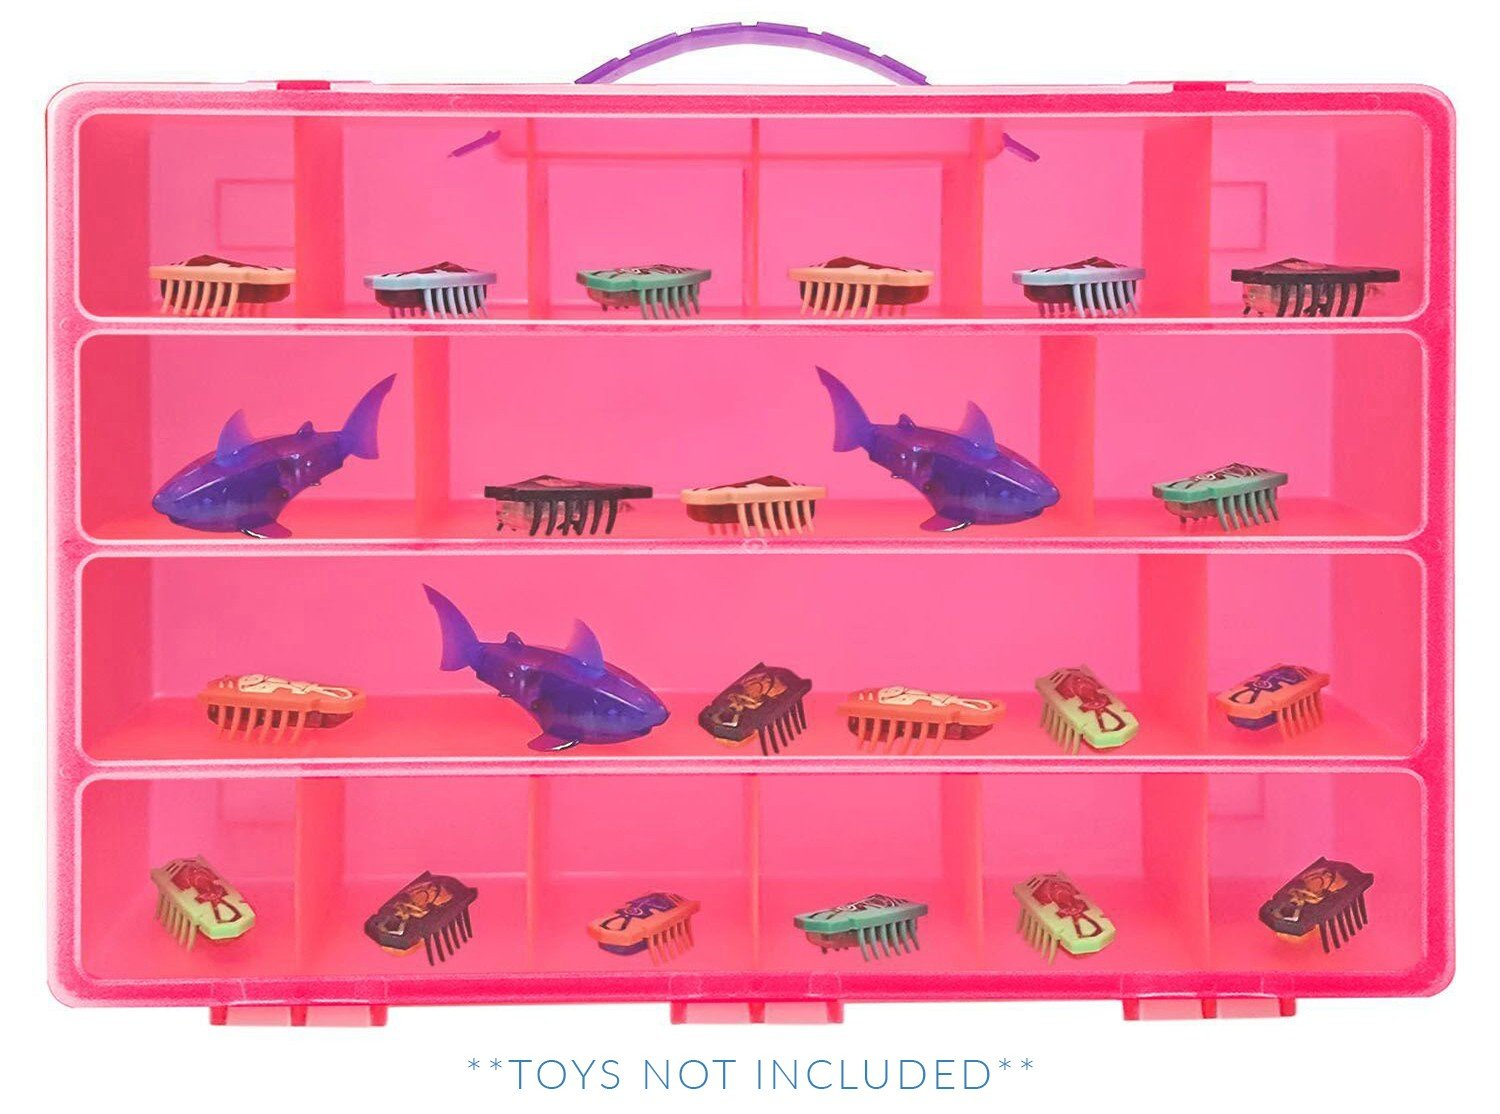 Hexbug Nano Case, Toy Storage Carrying Box. Figures Playset Organizer. Accessories For Kids by LMB